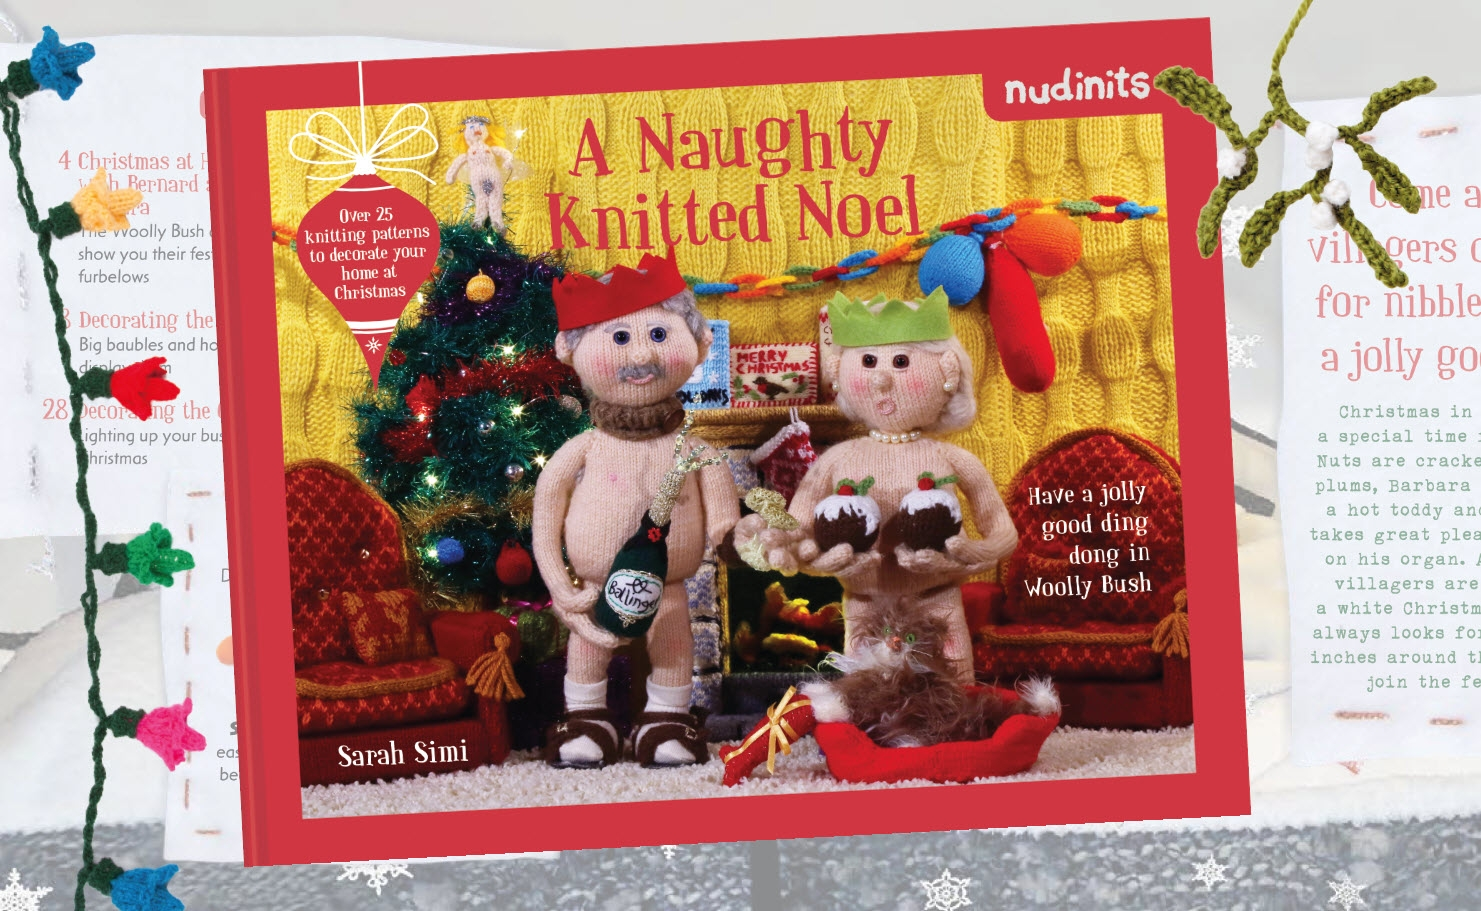 nudinits - a naughty knitted noel - book